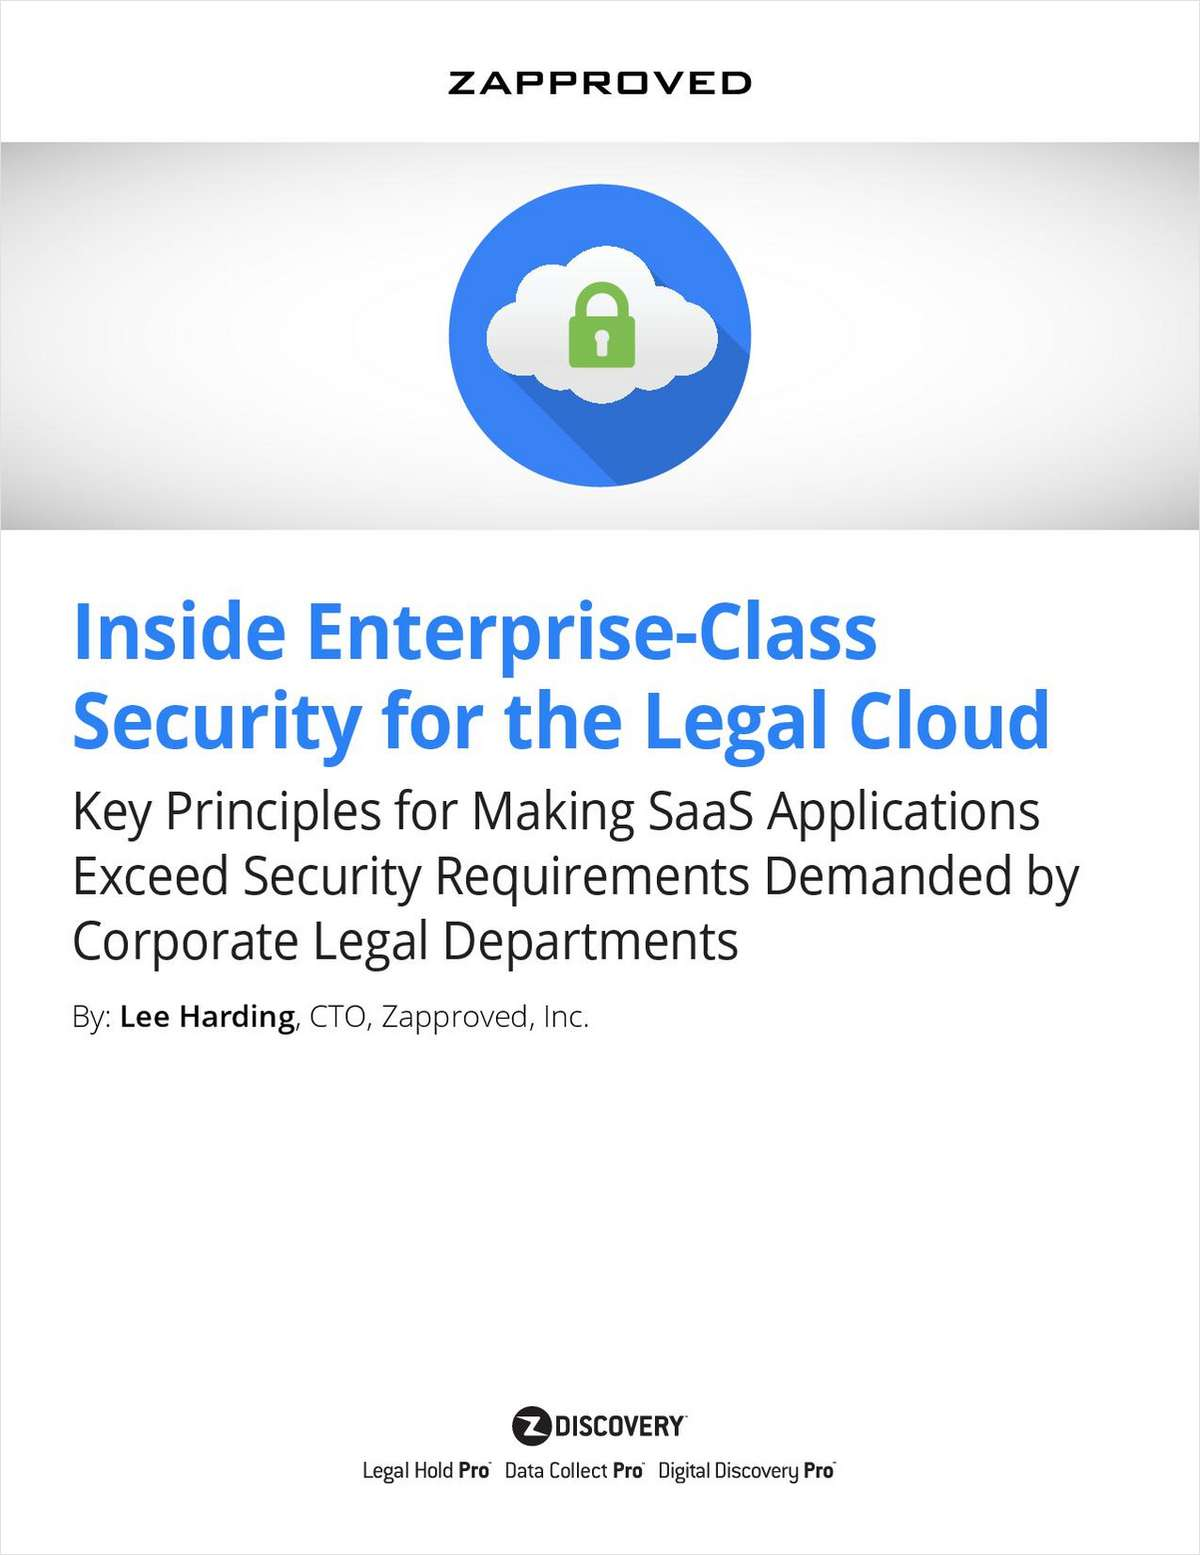 Inside enterprise class security for the legal cloud free zapproved white paper